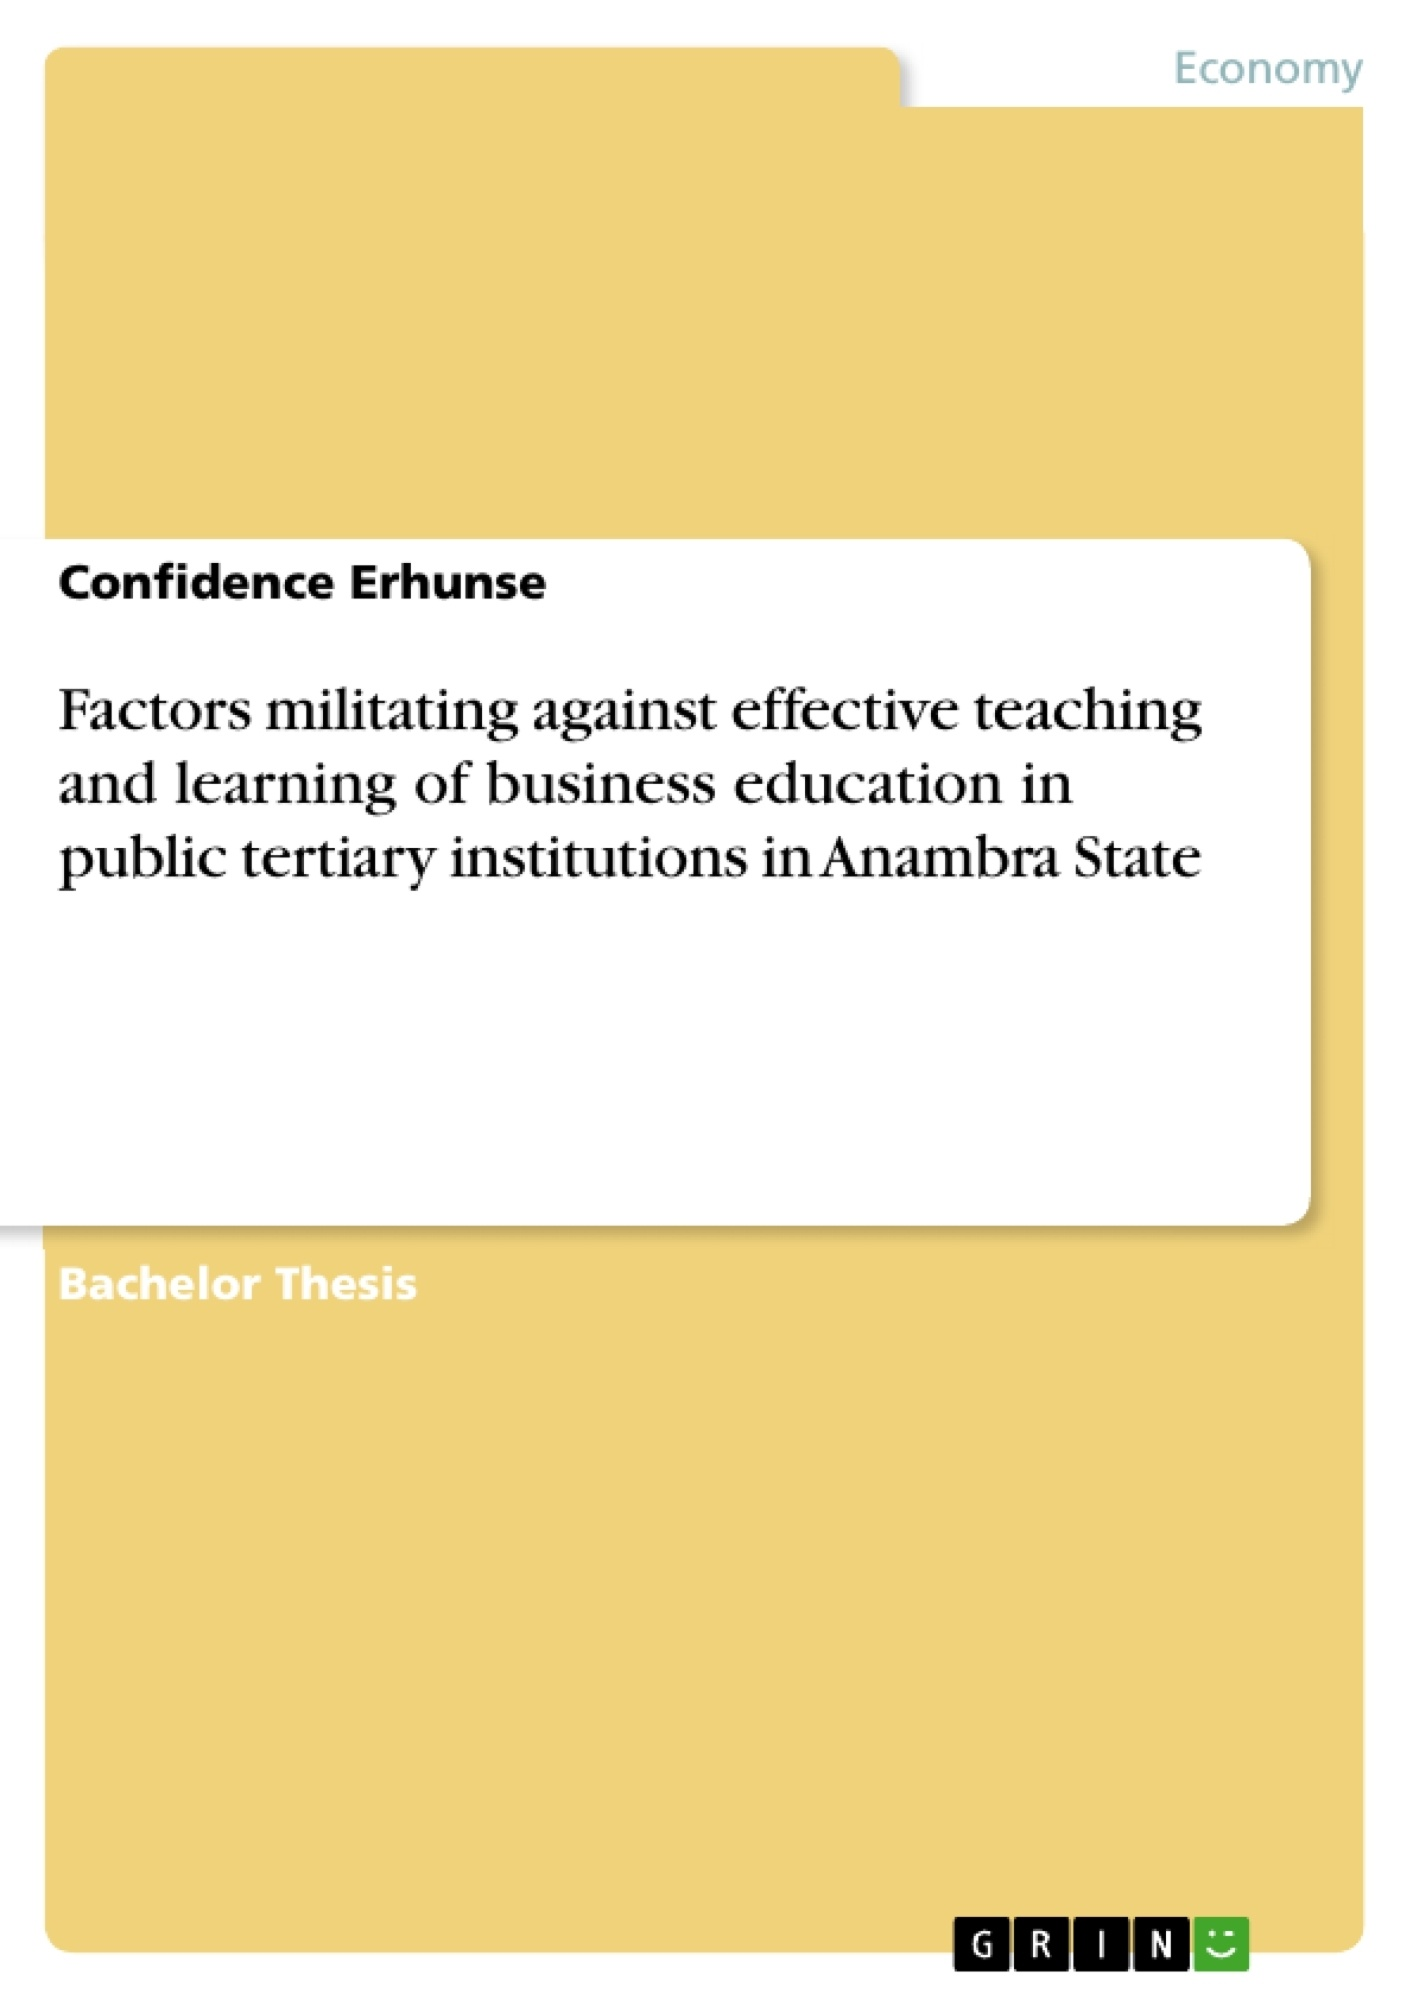 Title: Factors militating against effective teaching and learning of business education in public tertiary institutions in Anambra State